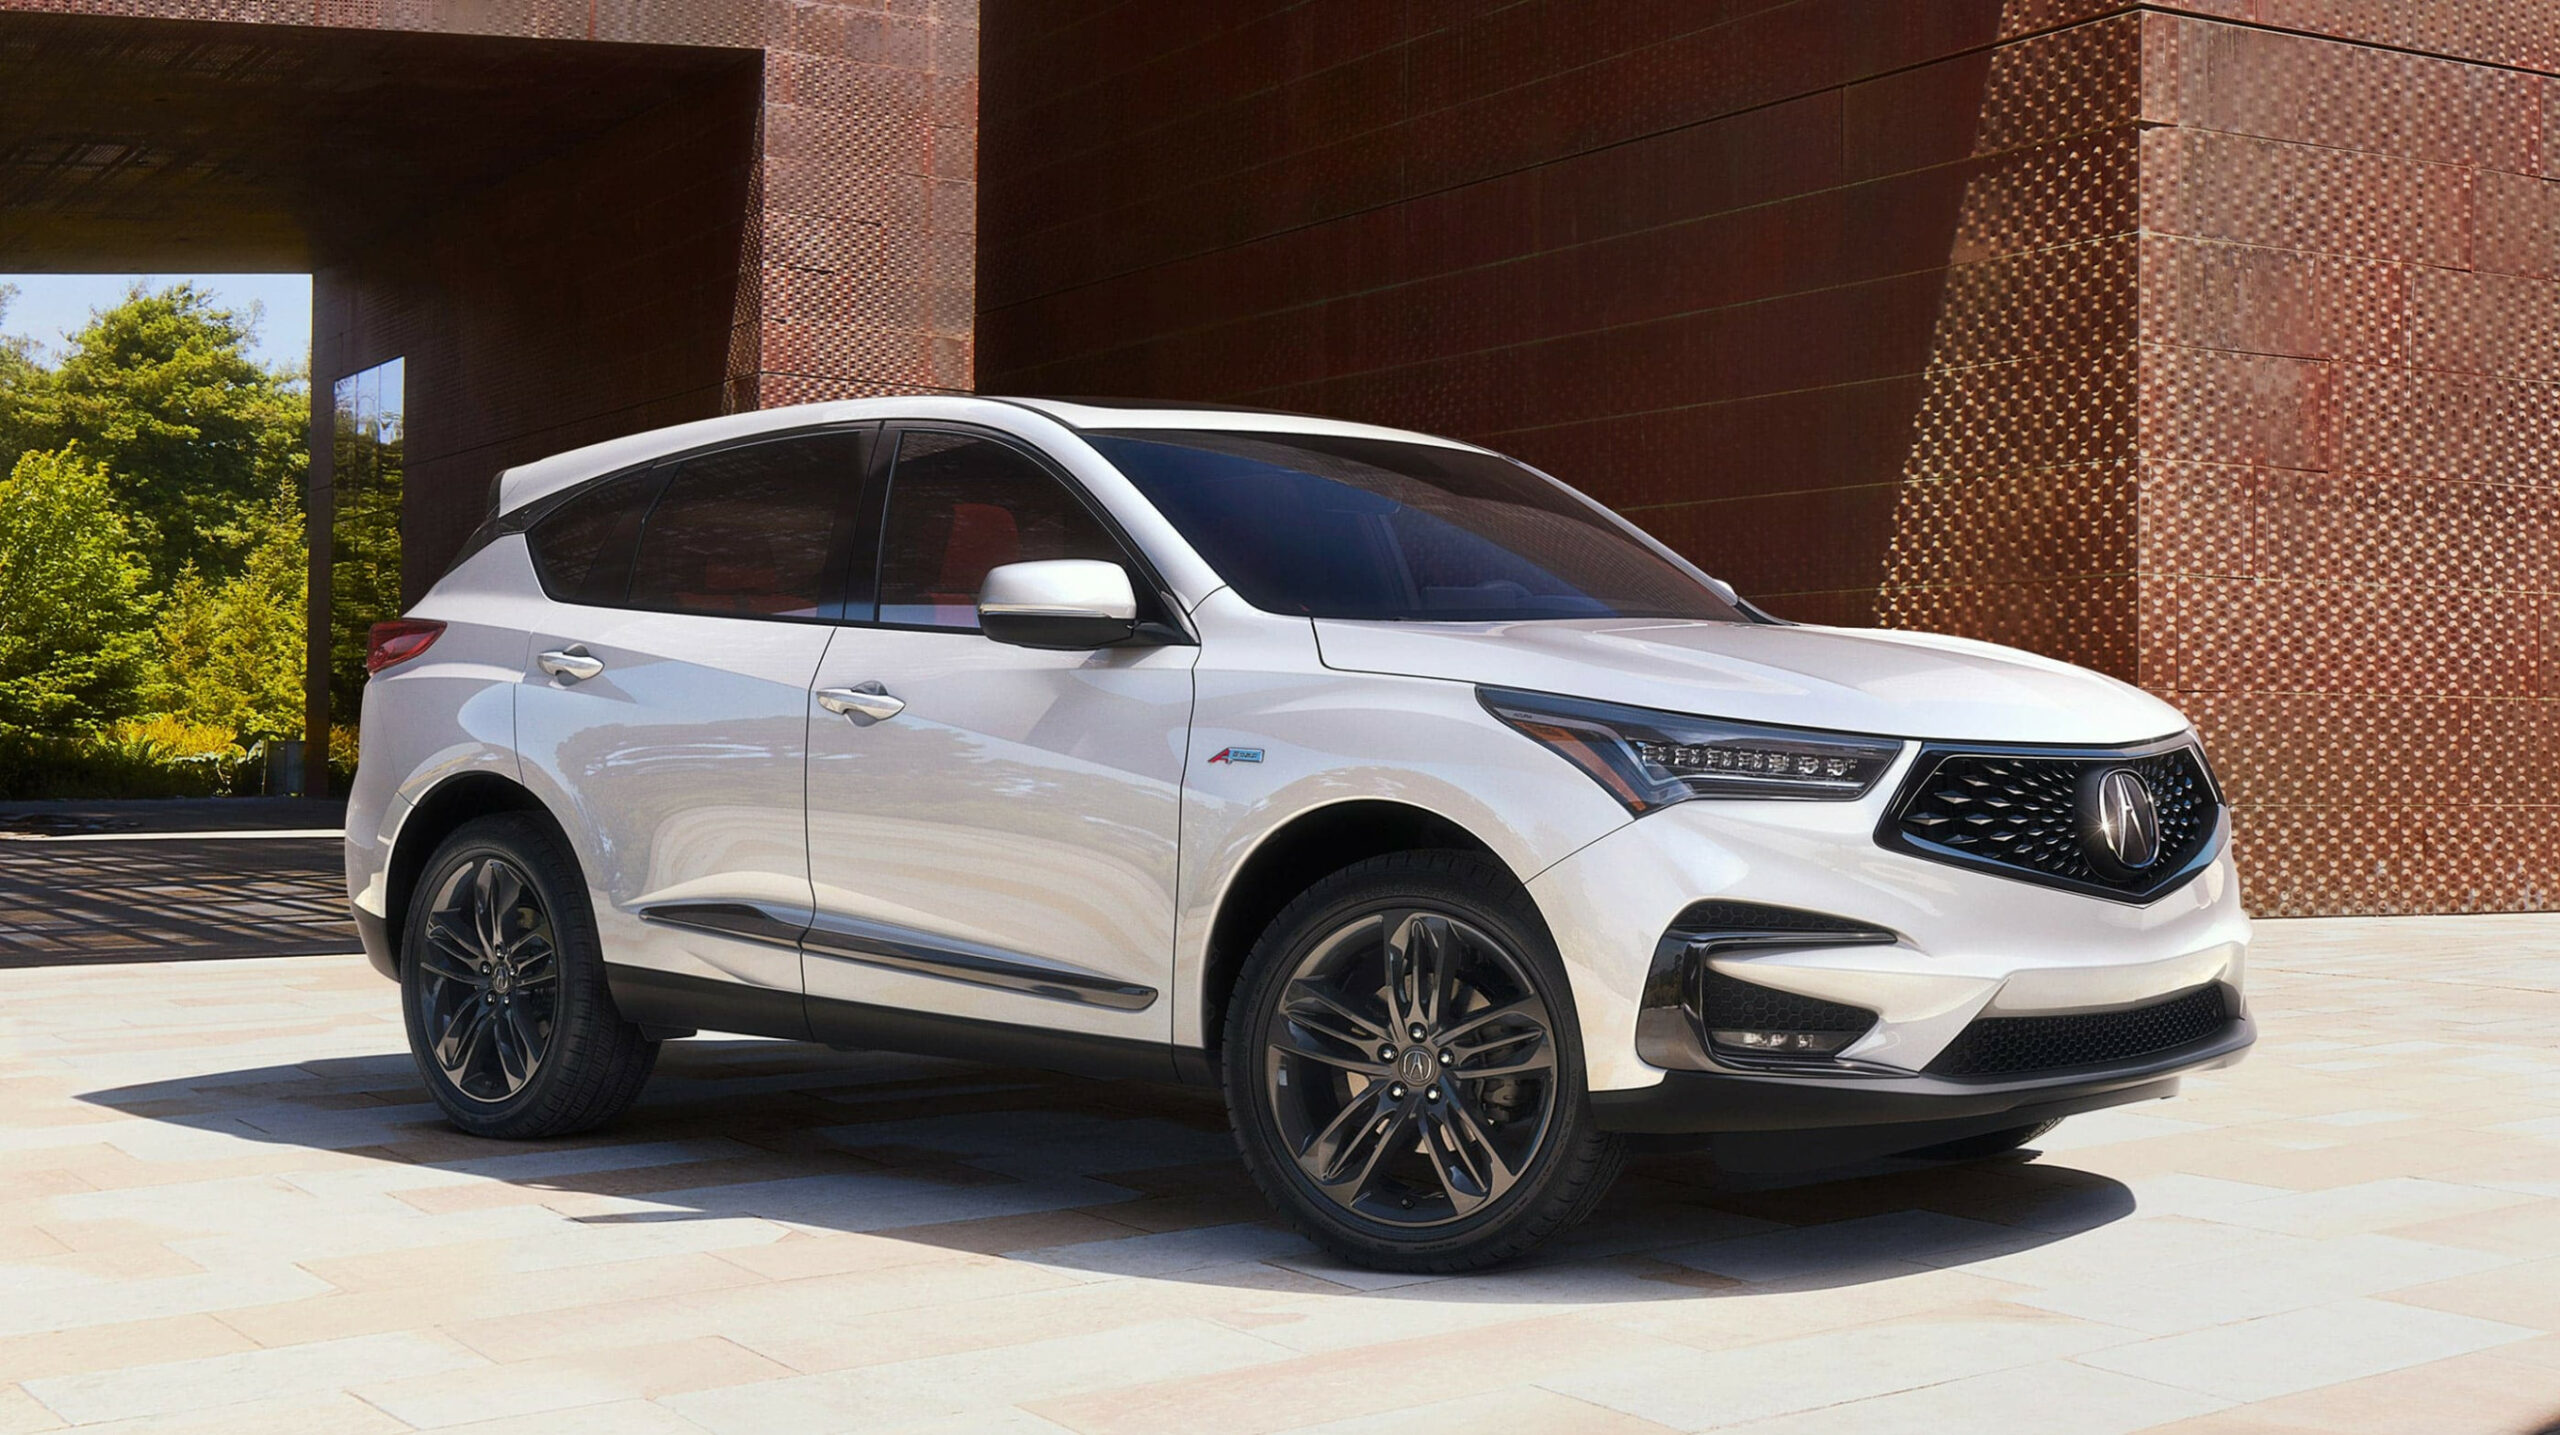 8 Acura RDX vs 8 Lexus NX near Kingsport, TN